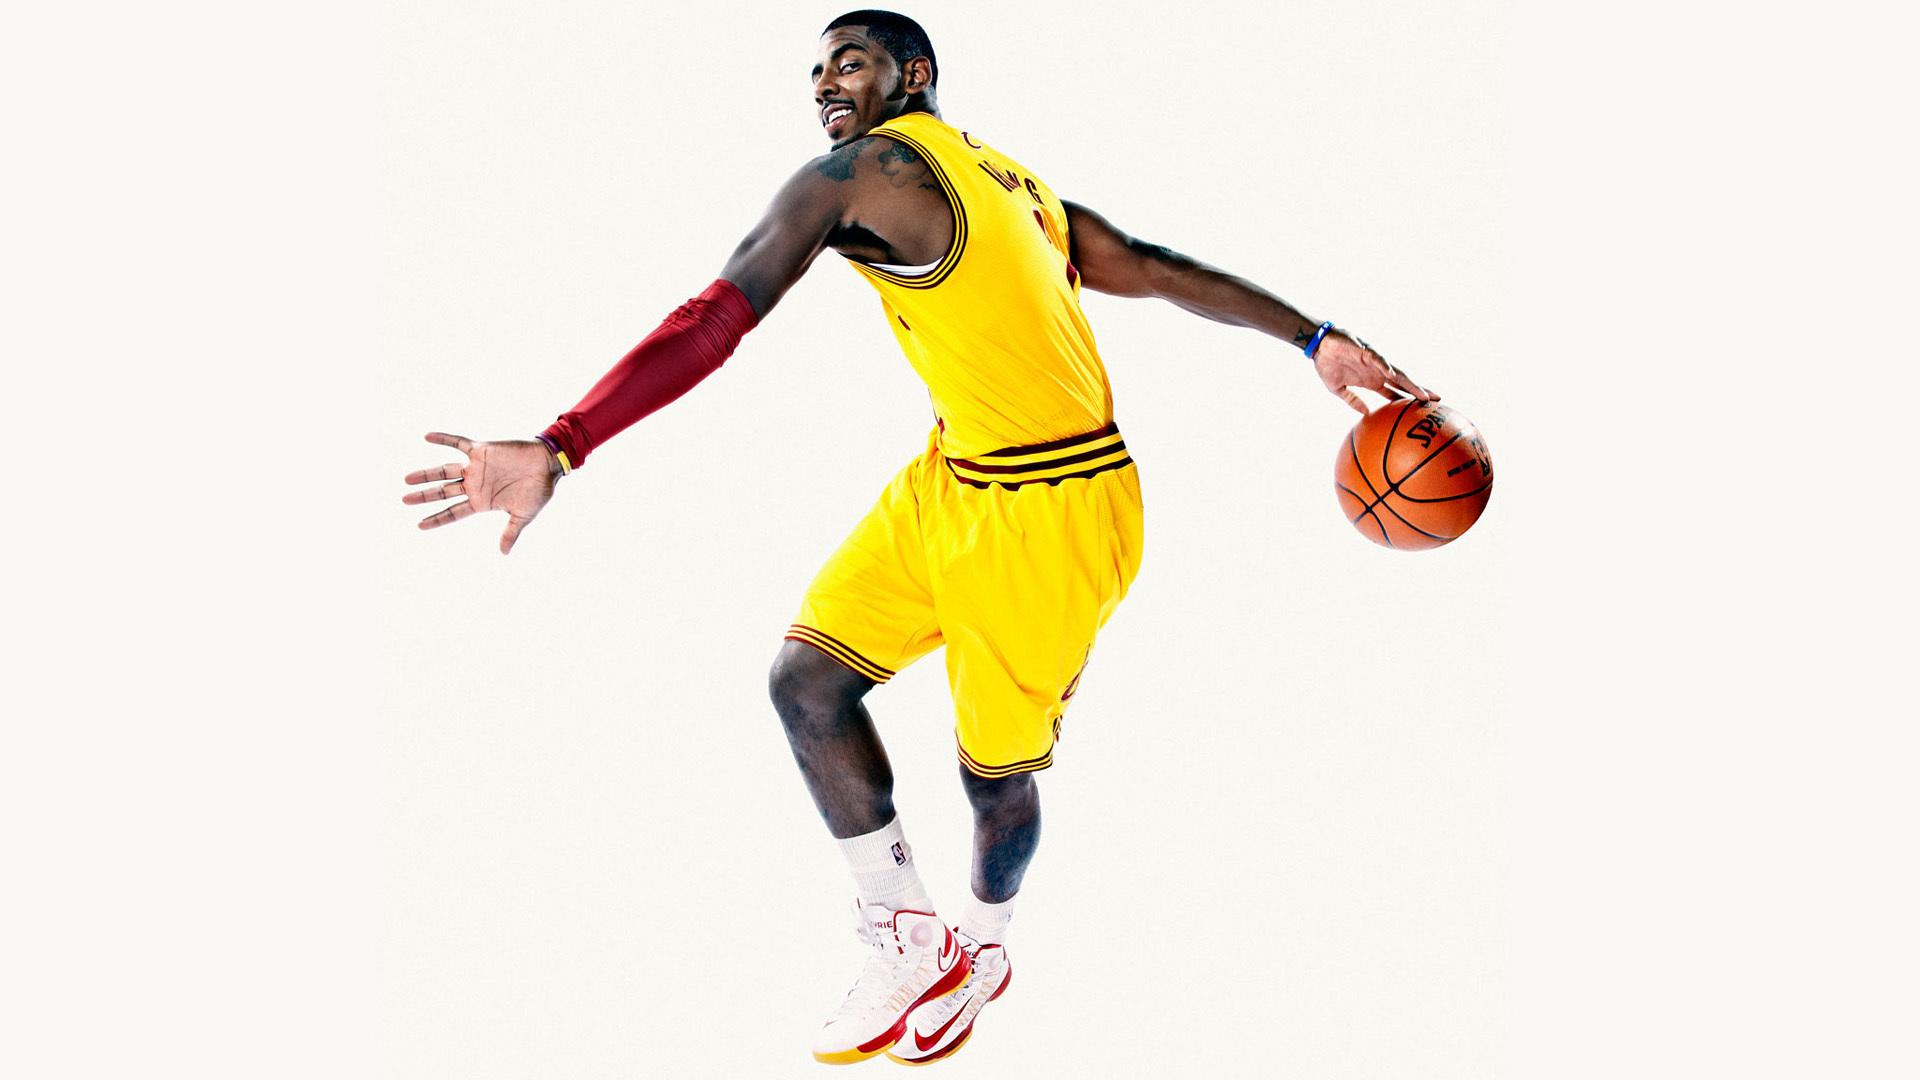 Kyrie Irving Wallpapers Images Photos Pictures Backgrounds Kyrie Irving Wallpaper Desktop